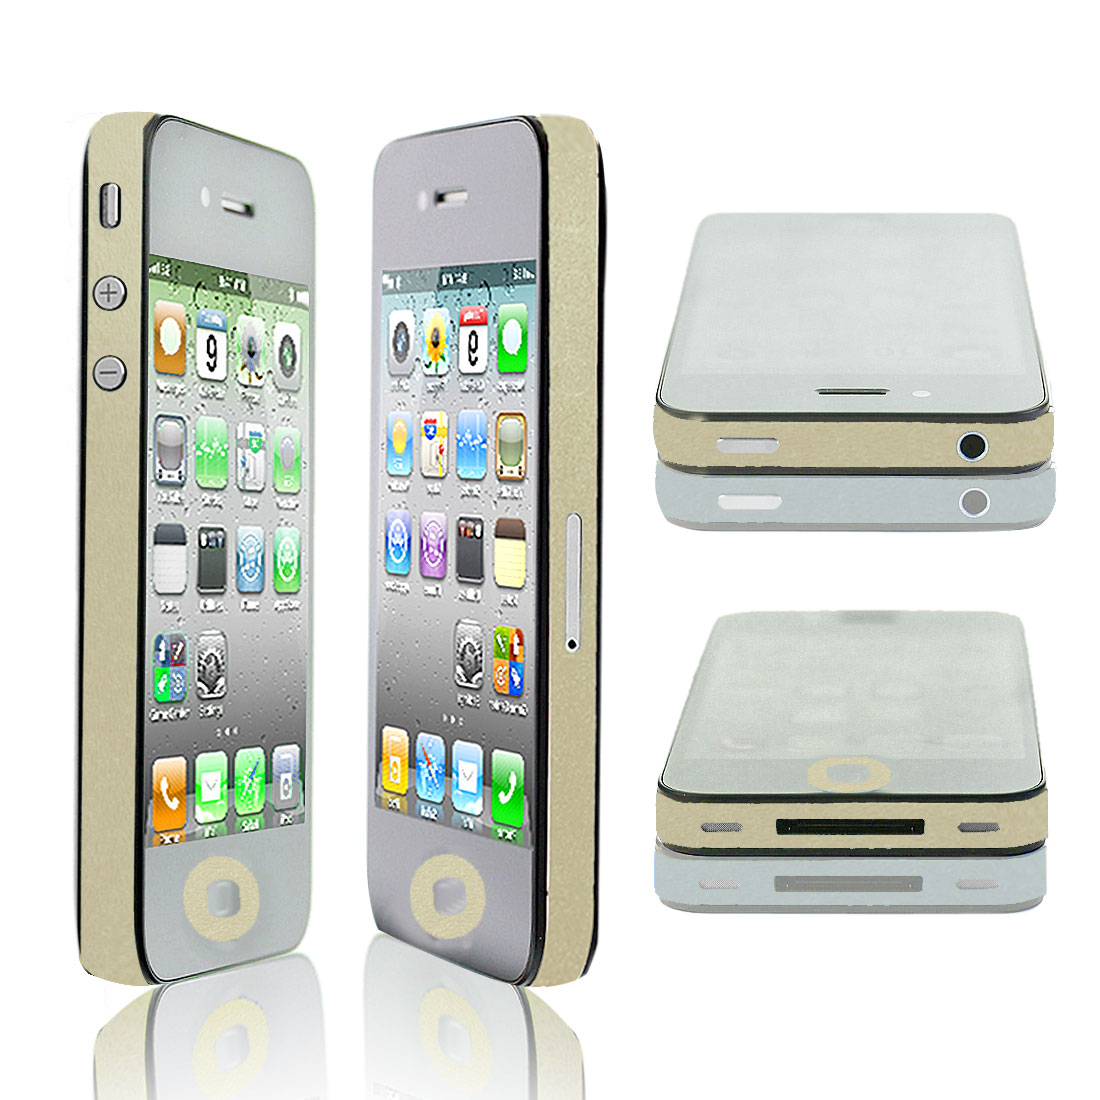 Bling Edge Wrap Decal Button Sticker Cover Pale Yellow for iPhone 4 4S 4G 4GS 4th